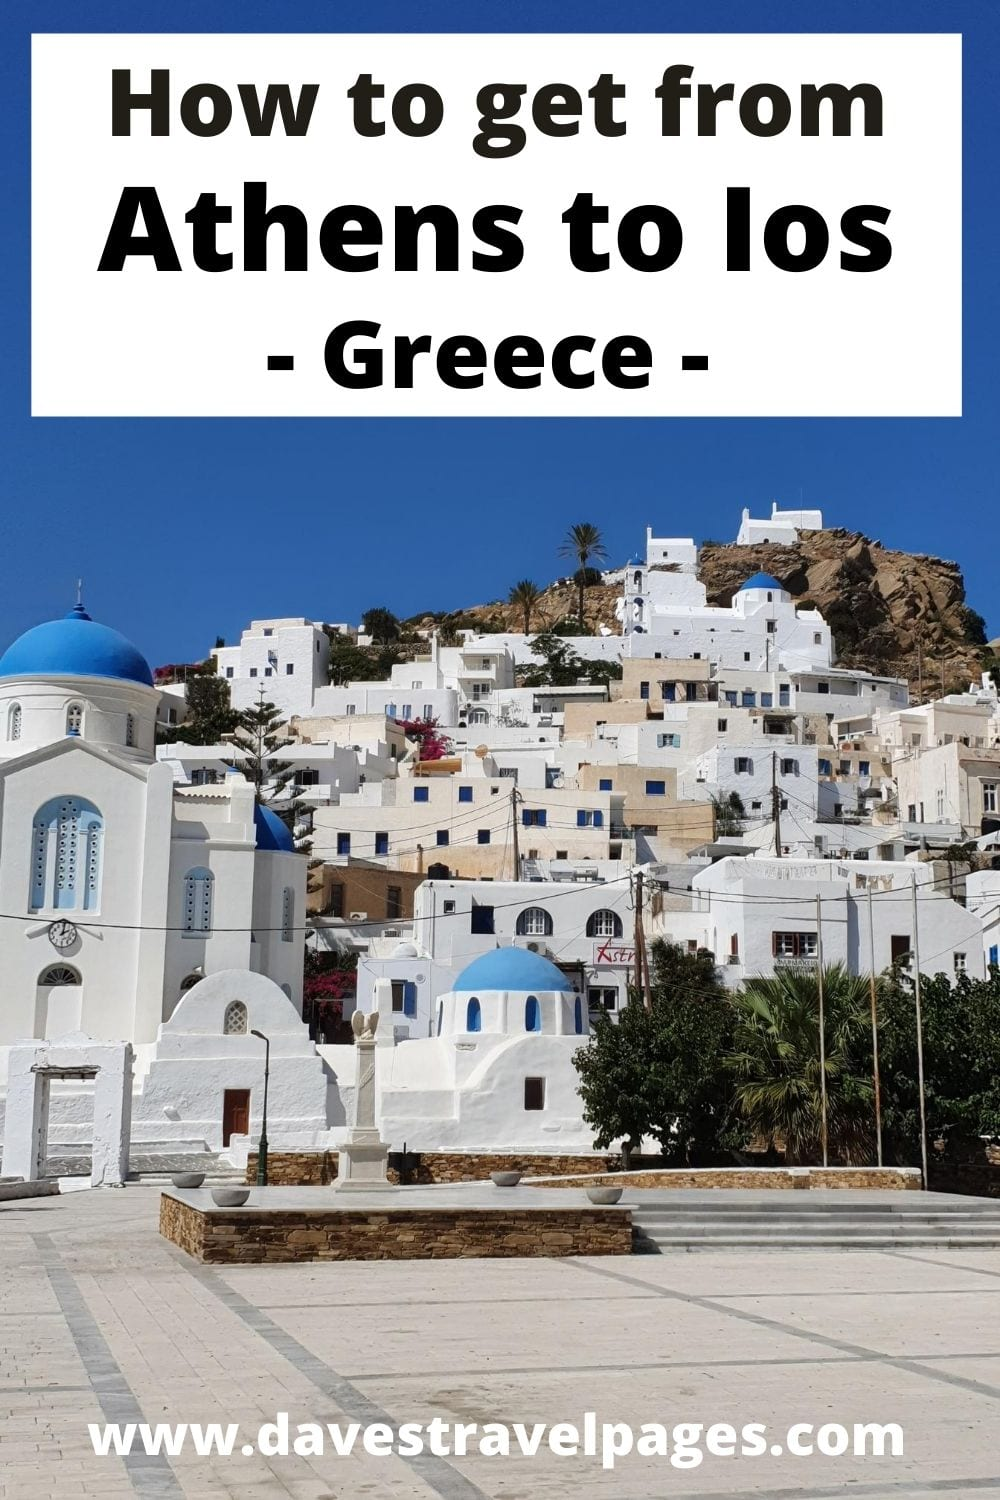 How to get from Athens to Ios in Greece by ferry